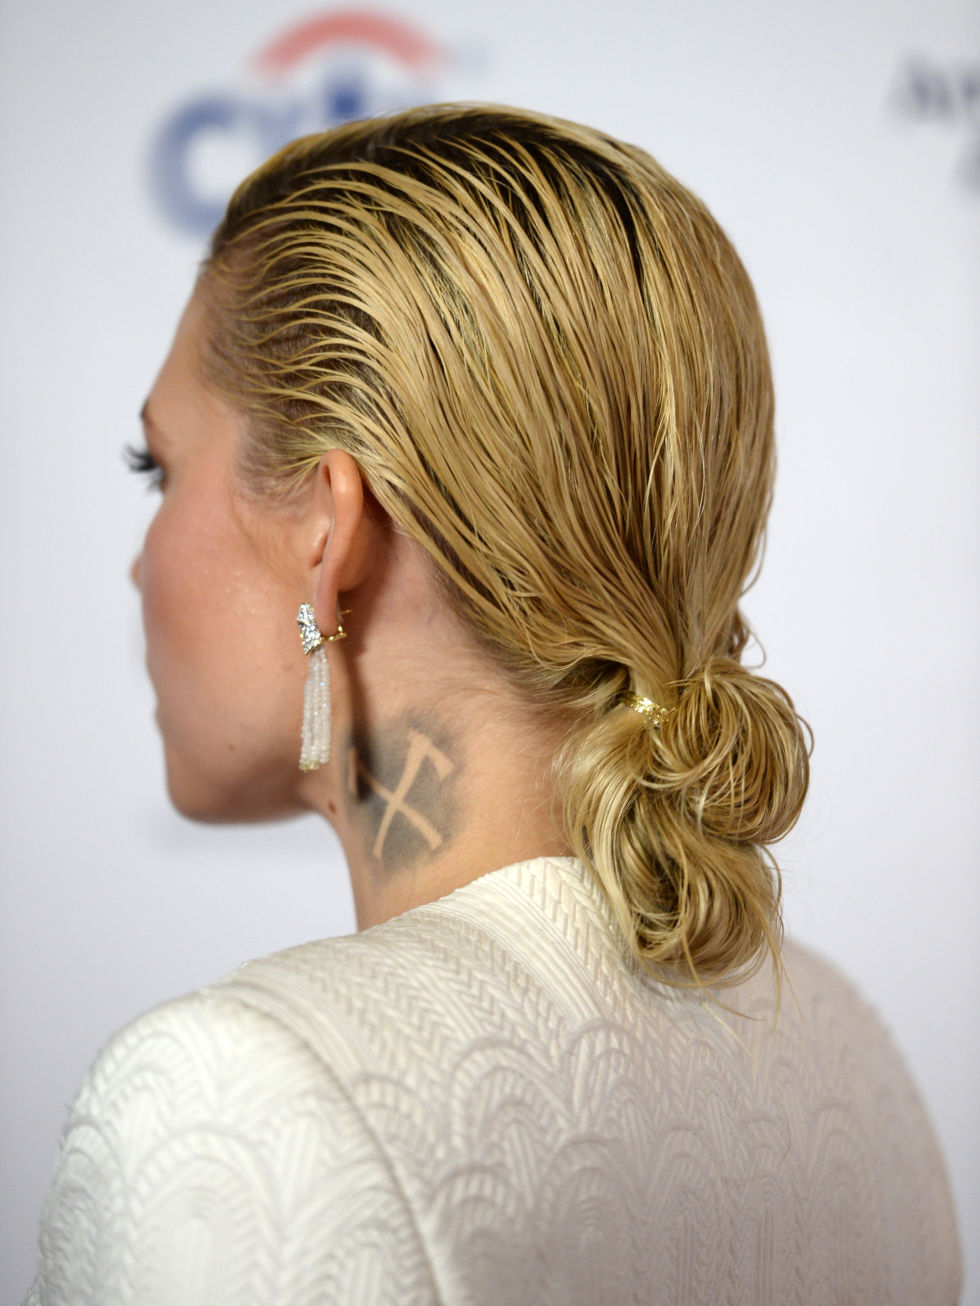 Strange Hairstyles You Can Do With One Hair Tie Easy Hair Ideas Spring 2015 Short Hairstyles For Black Women Fulllsitofus